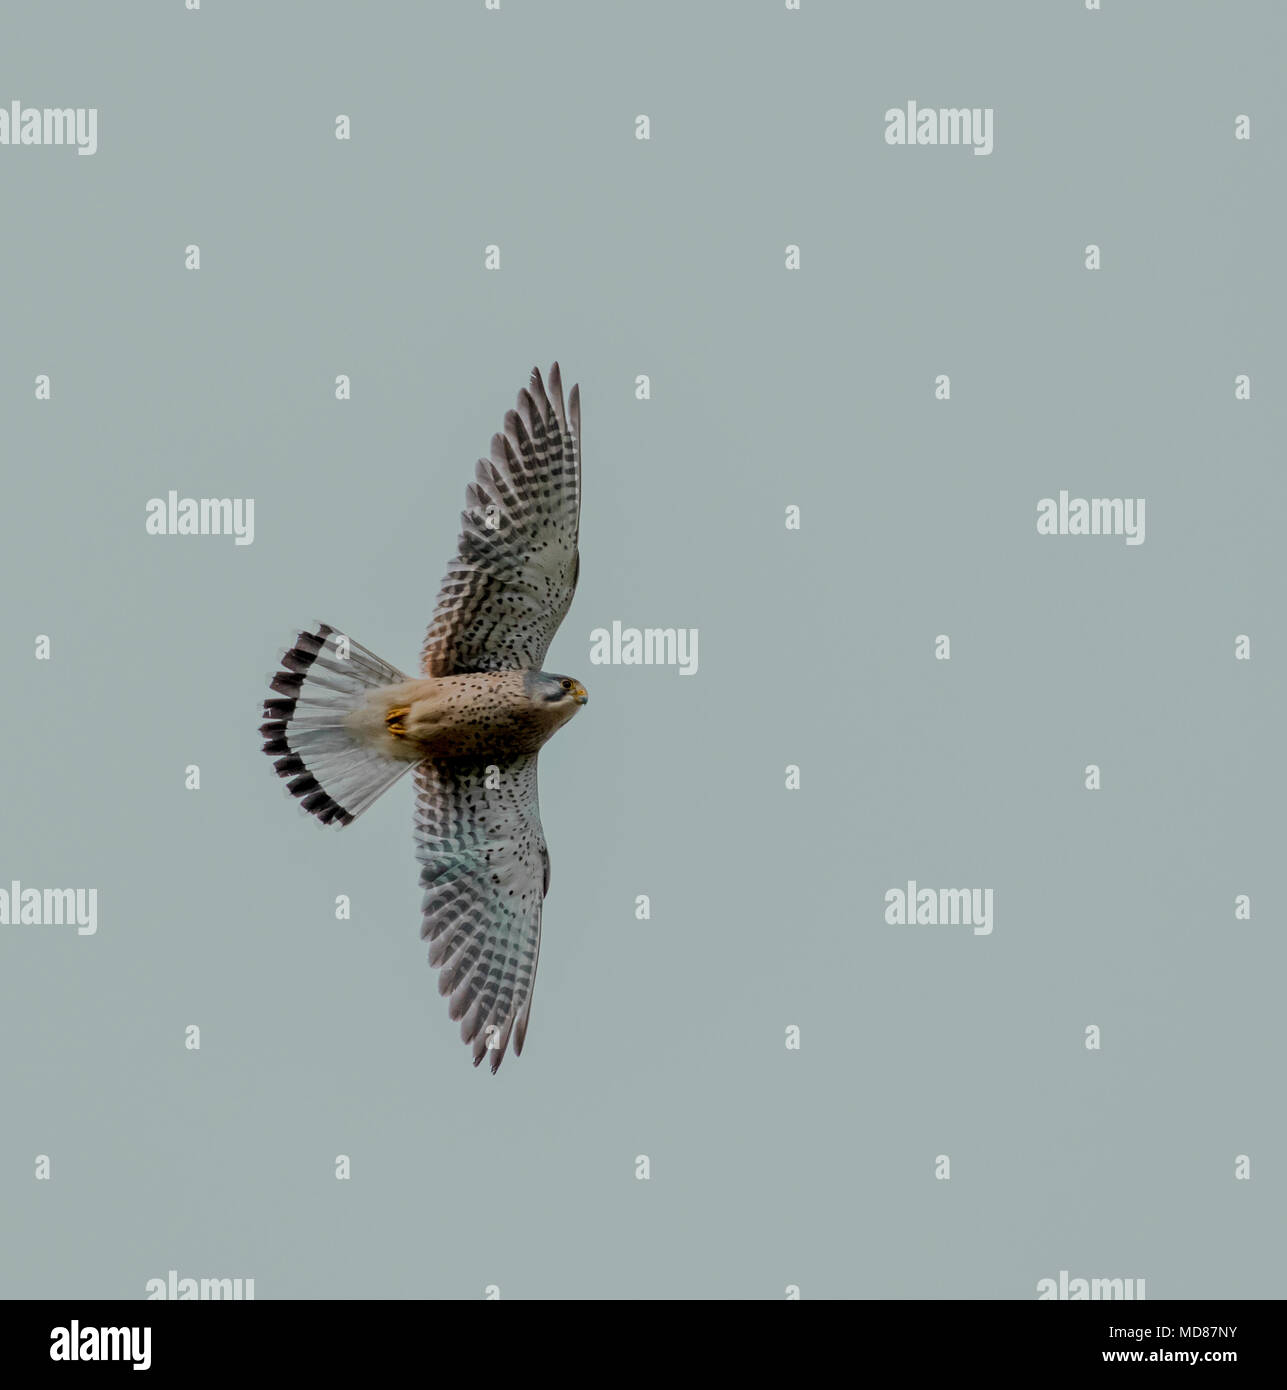 A male common kestrel hovering (UK) - Stock Image